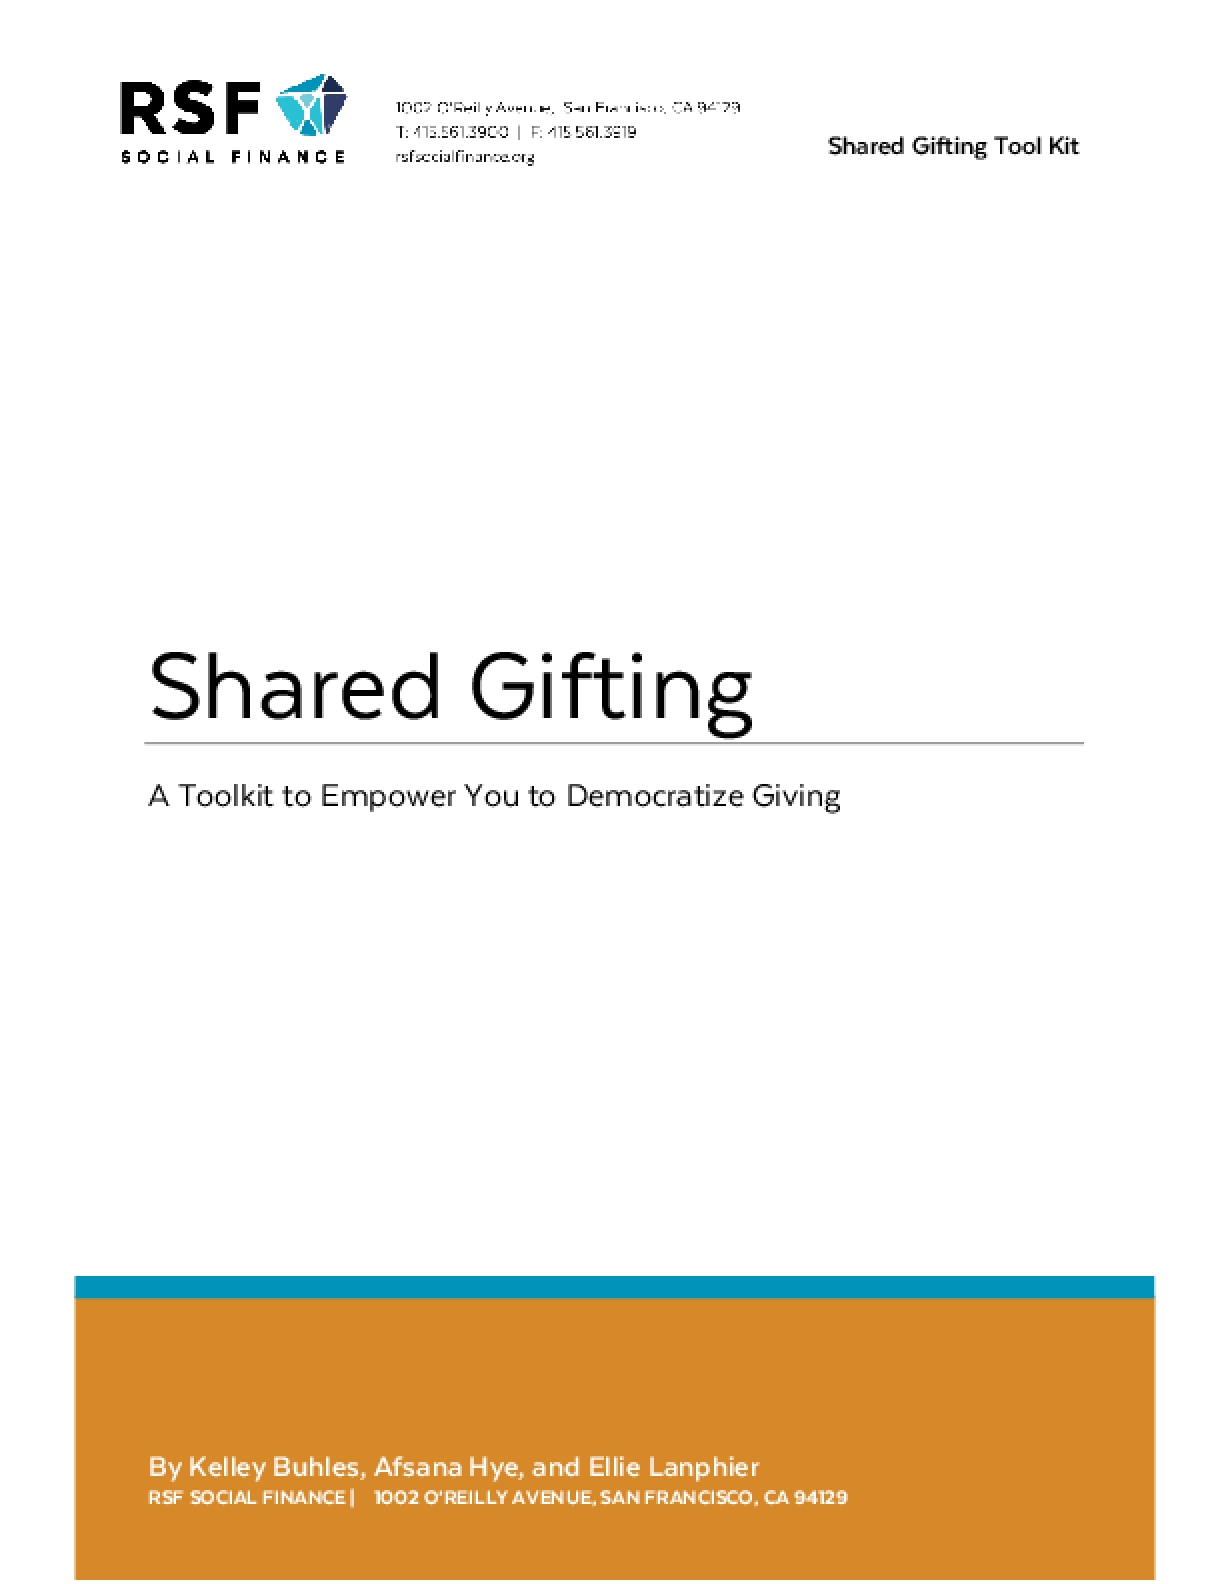 Shared Gifting: A Toolkit to Empower You to Democratize Giving